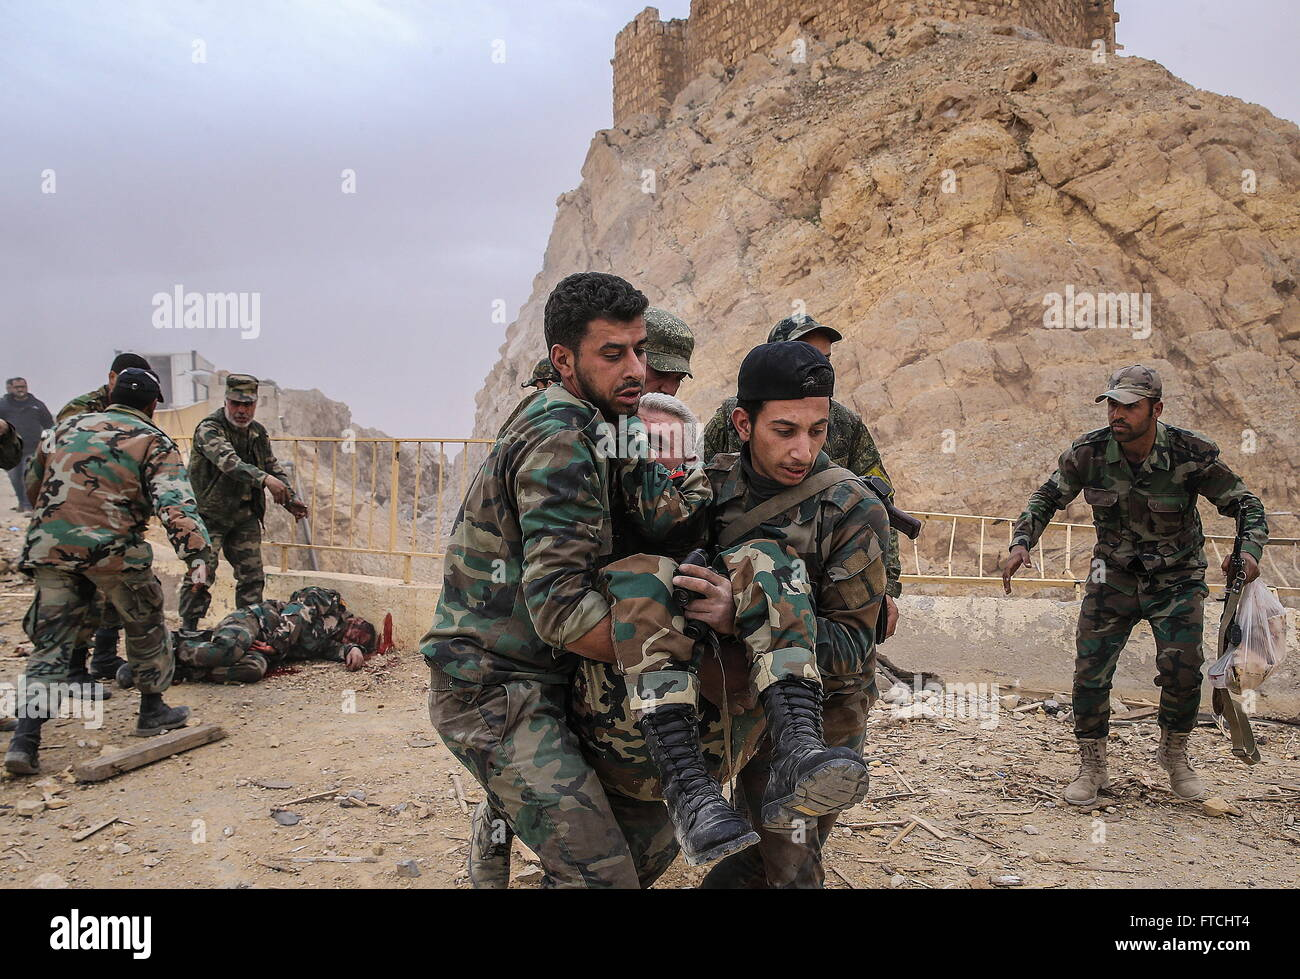 Palmyria, Syria. 26th Mar, 2016. Soldiers of the Syrian government army help their fellow soldier after an explosion Stock Photo